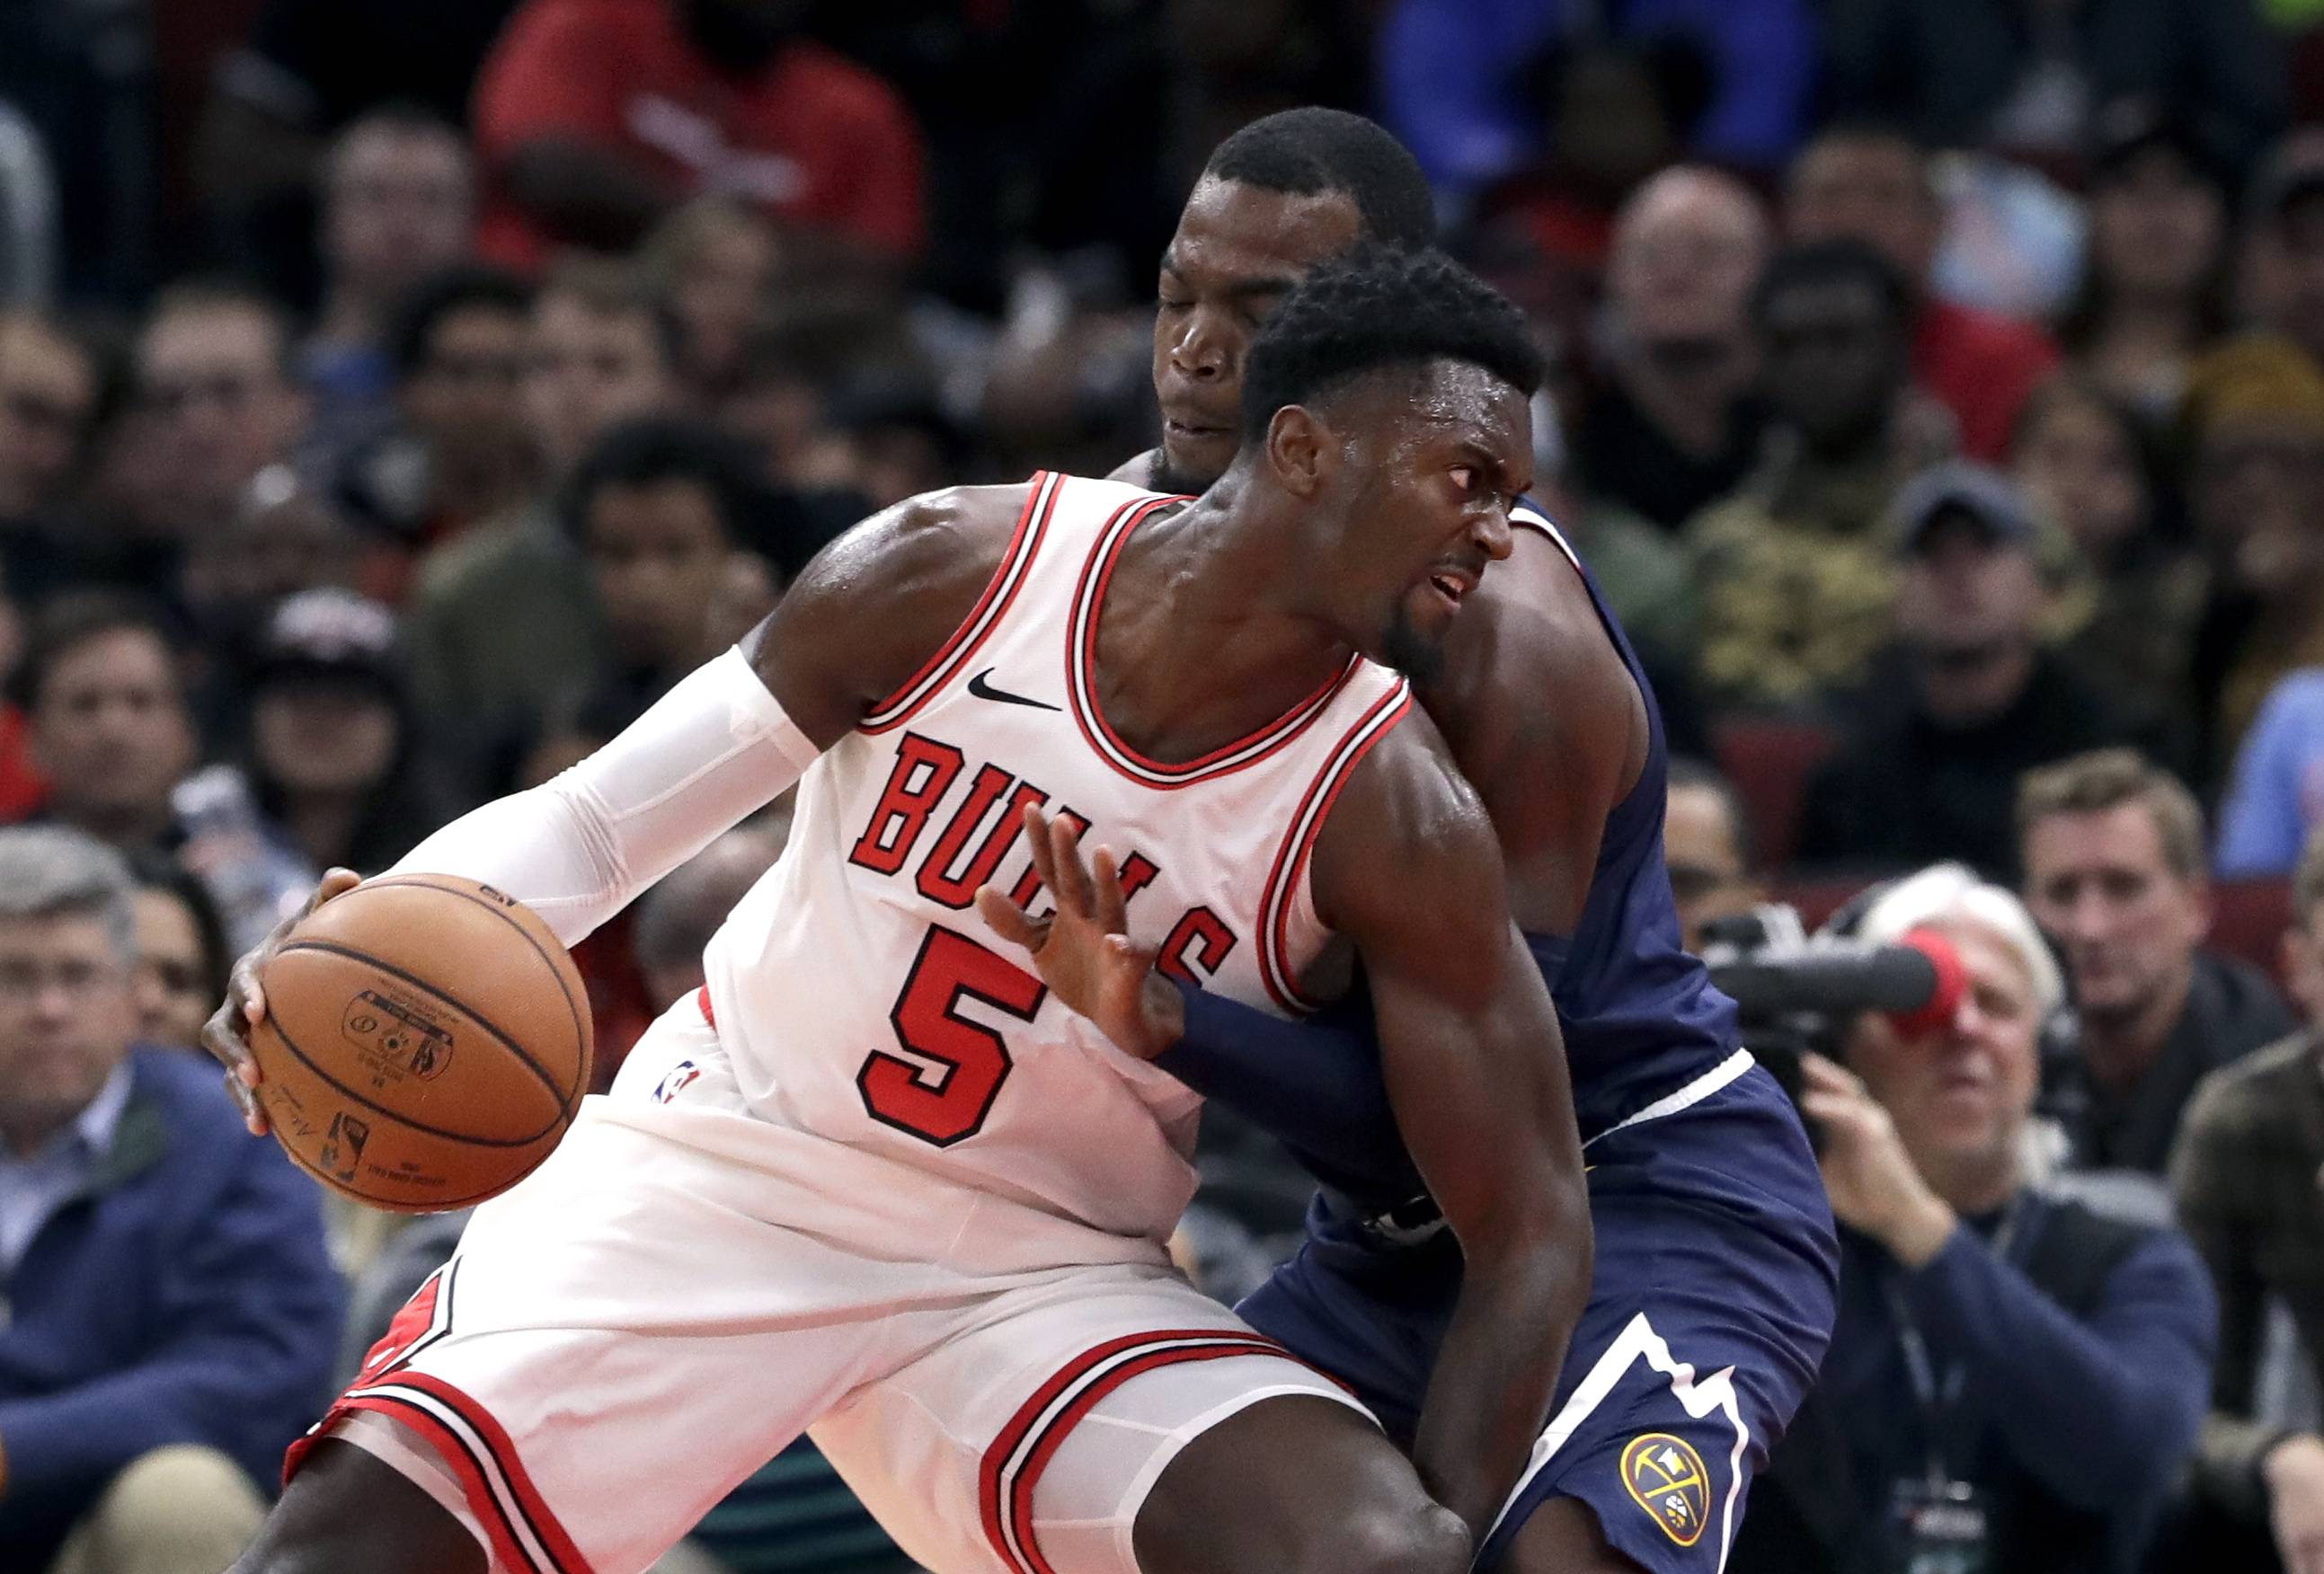 Chicago Bulls forward Bobby Portis (5) drives against Denver Nuggets forward Paul Millsap during the first half of an NBA preseason basketball game Friday, Oct. 12, 2018, in Chicago. (AP Photo/Nam Y. Huh)